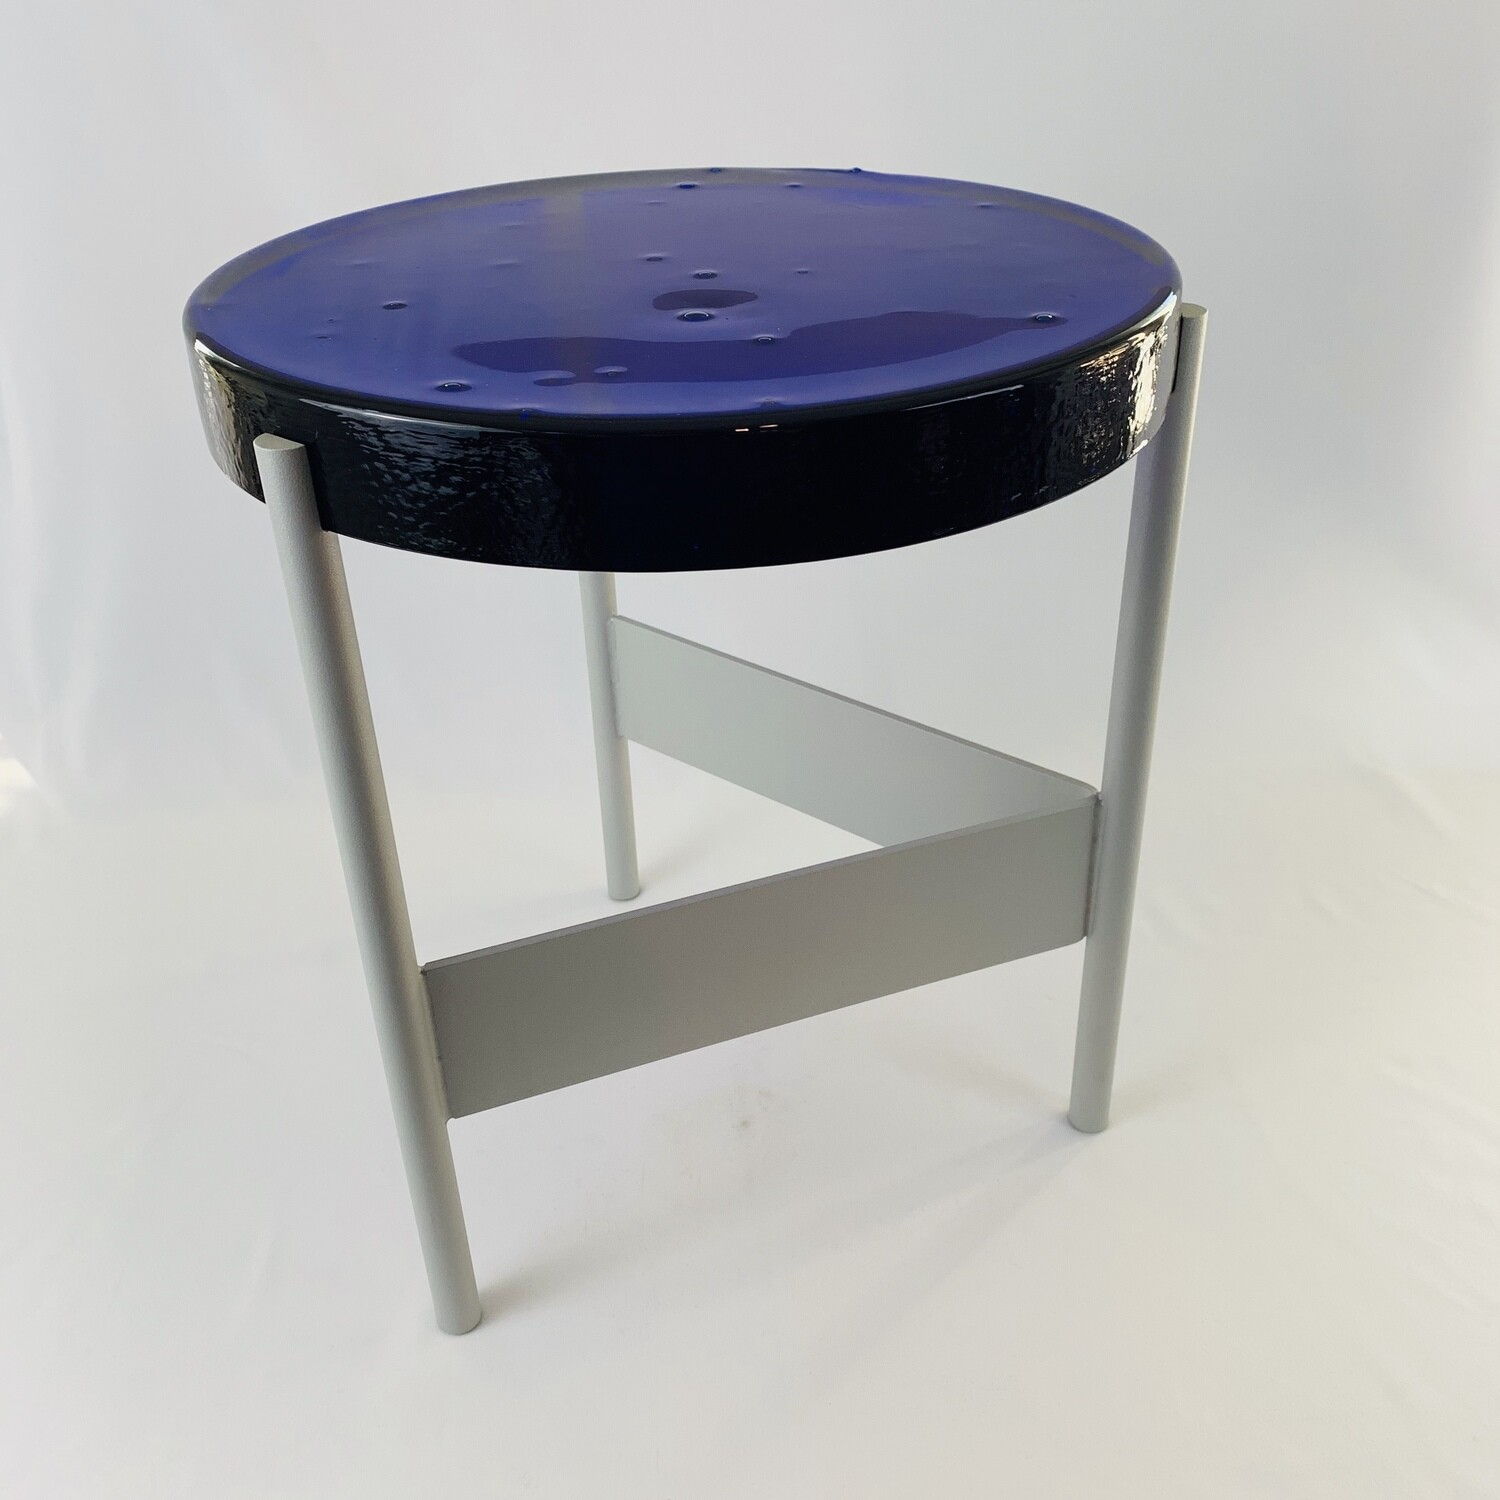 Alwa Two Table - Cobalt/Silver